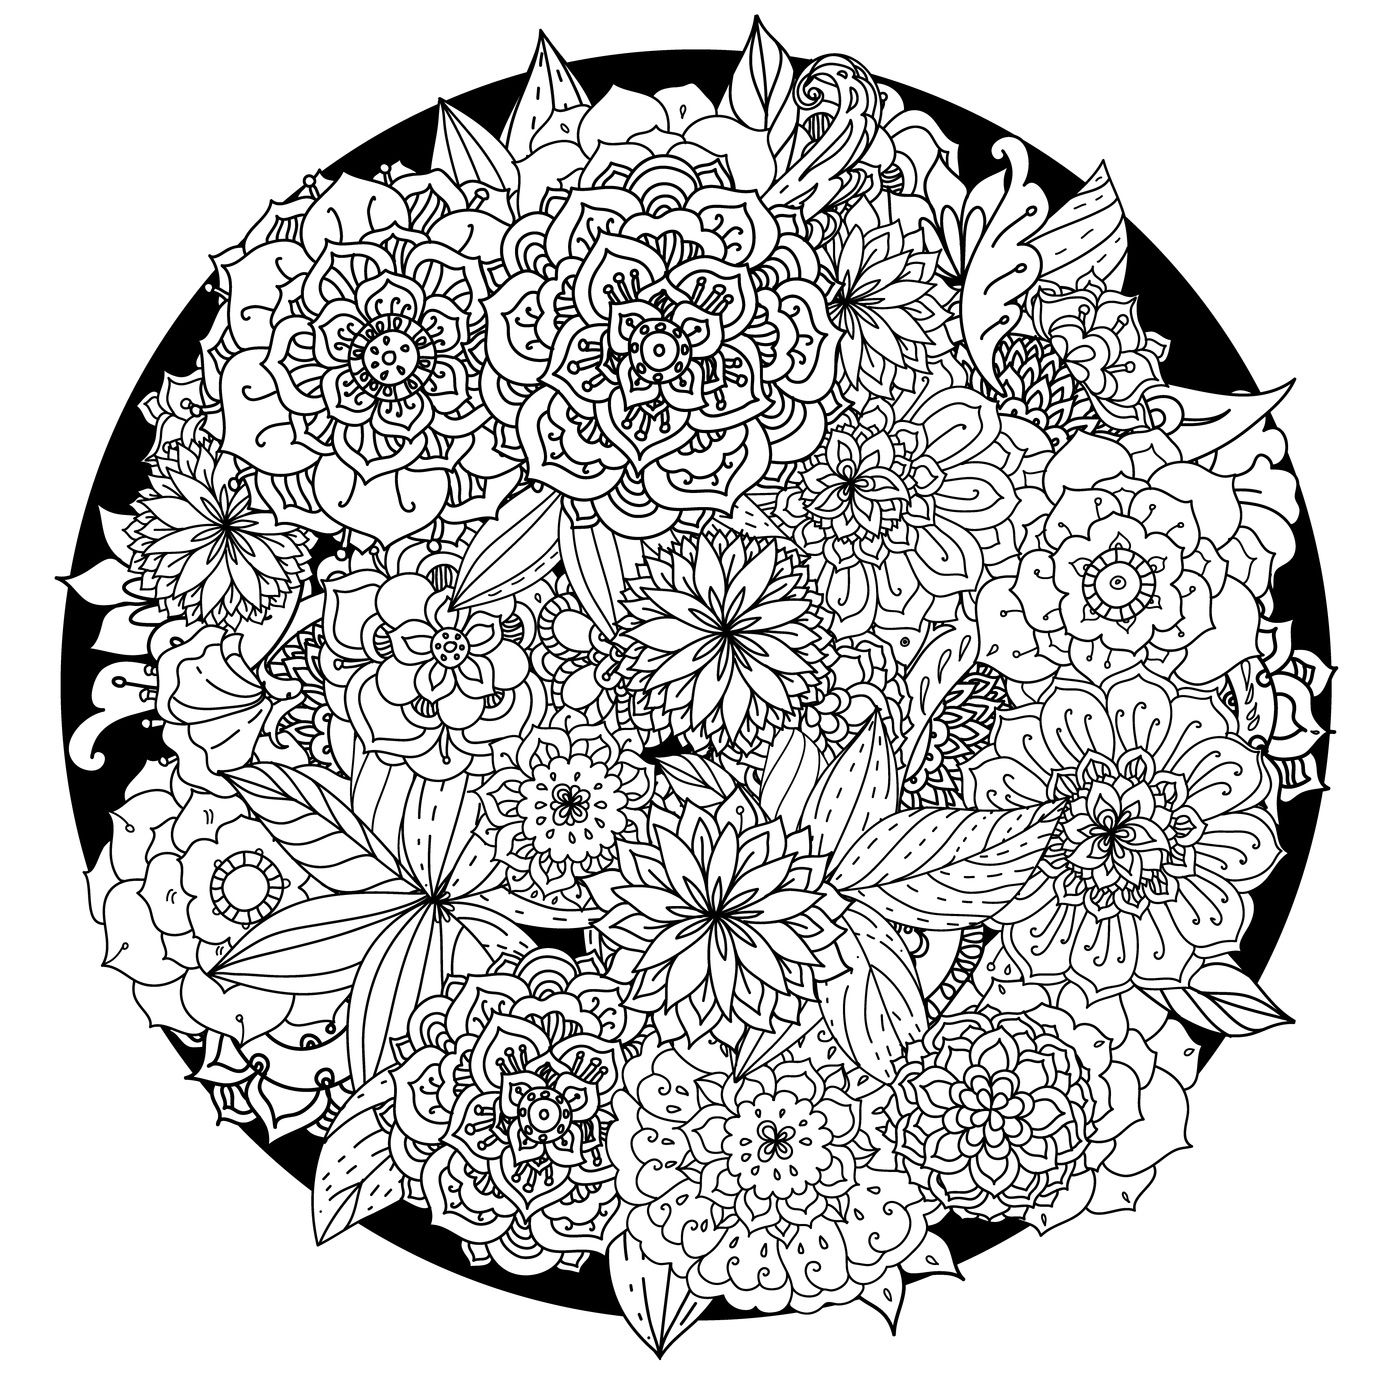 These Printable Abstract Coloring Pages Relieve Stress And Help You Meditate Abstract Coloring Pages Coloring Pages To Print Flower Coloring Pages